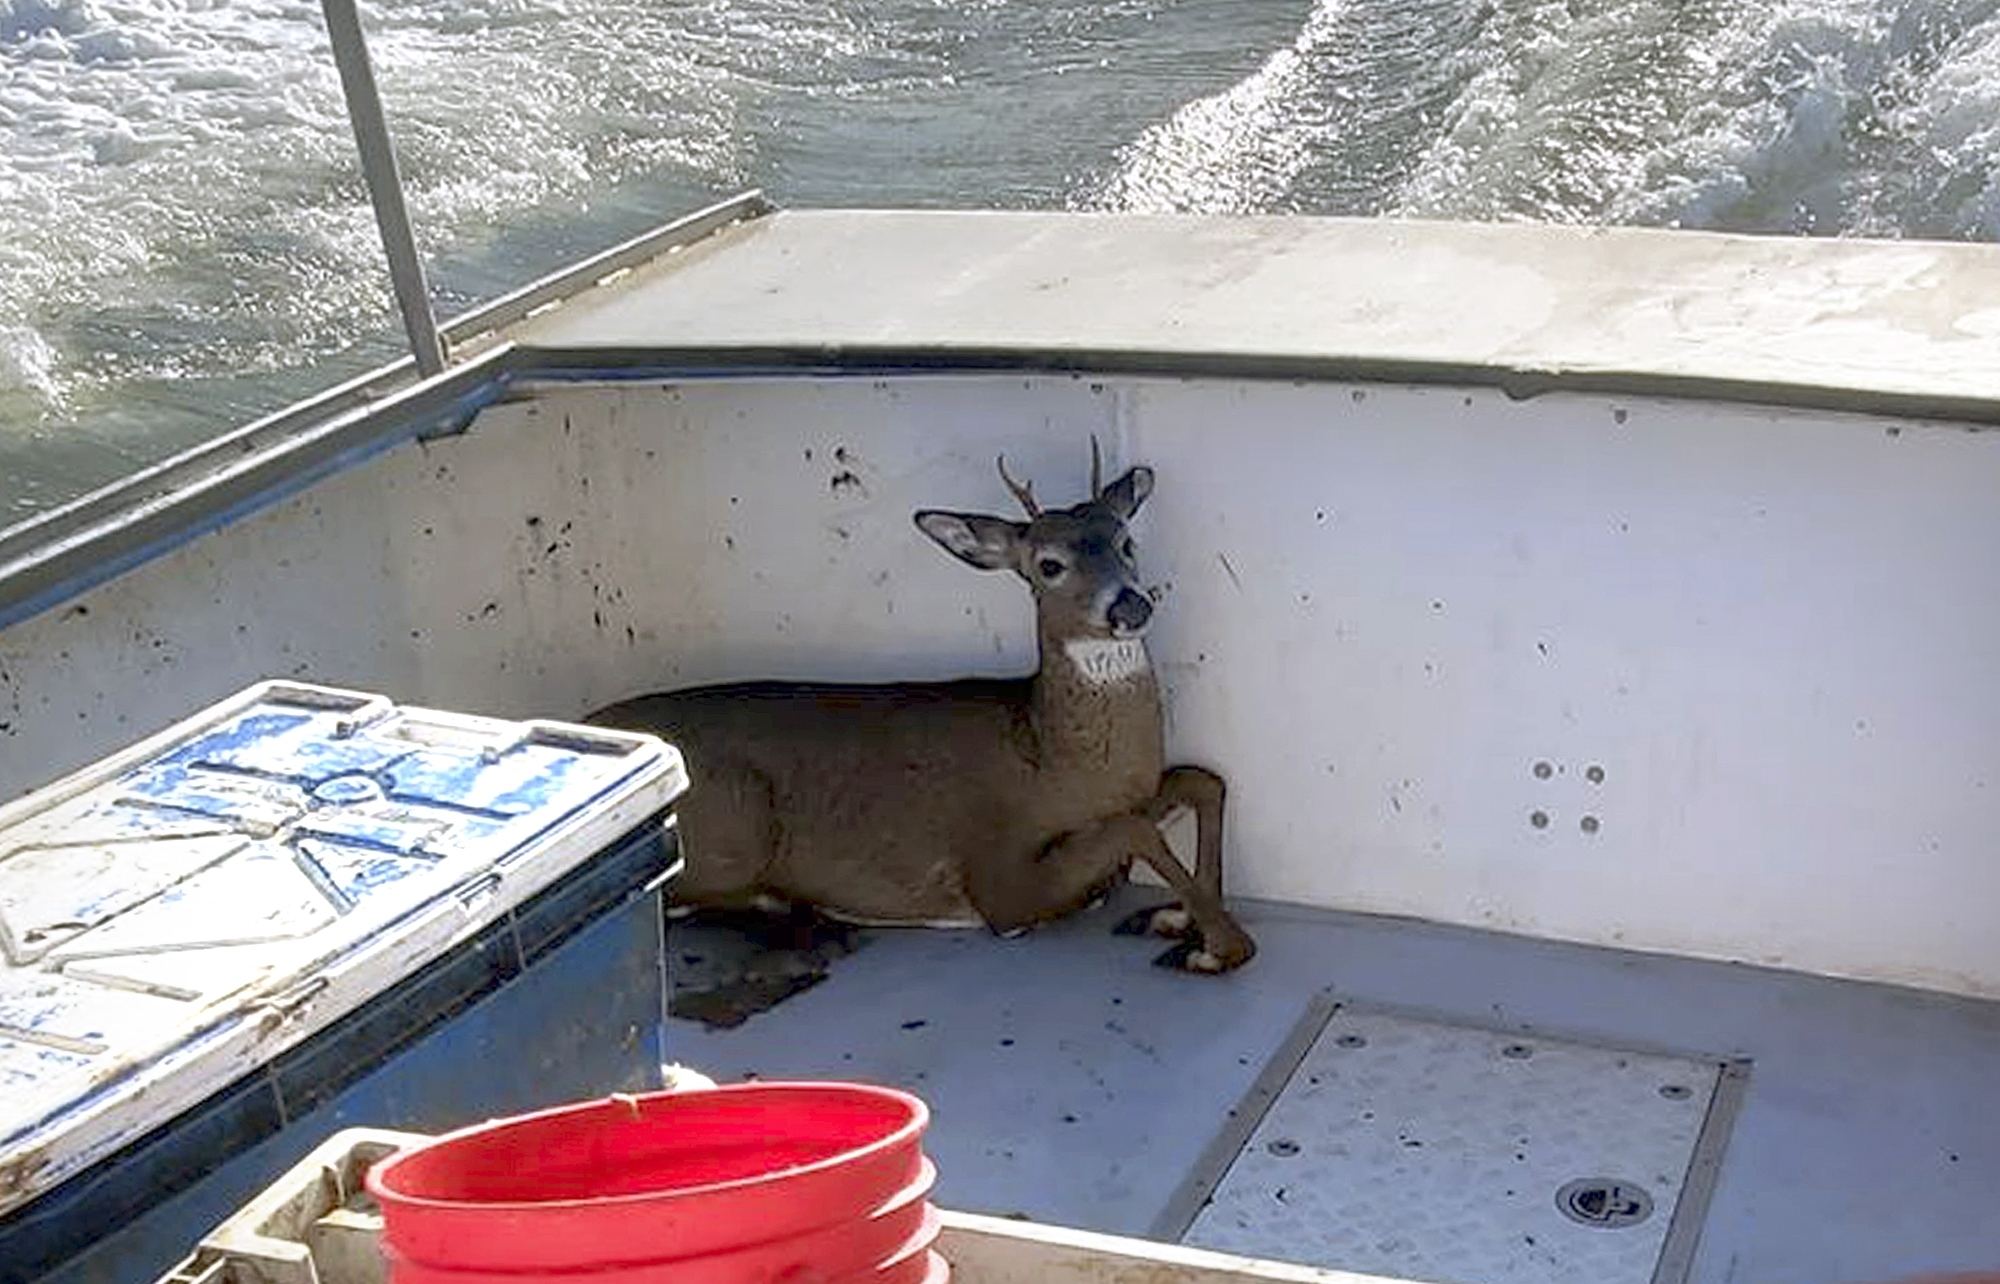 In this Monday, Nov. 4, 2019, photo provided by Jared Thaxter, a deer that was rescued from the ocean five miles off shore from Harrington, Maine, rests in a boat on its way back to shore.